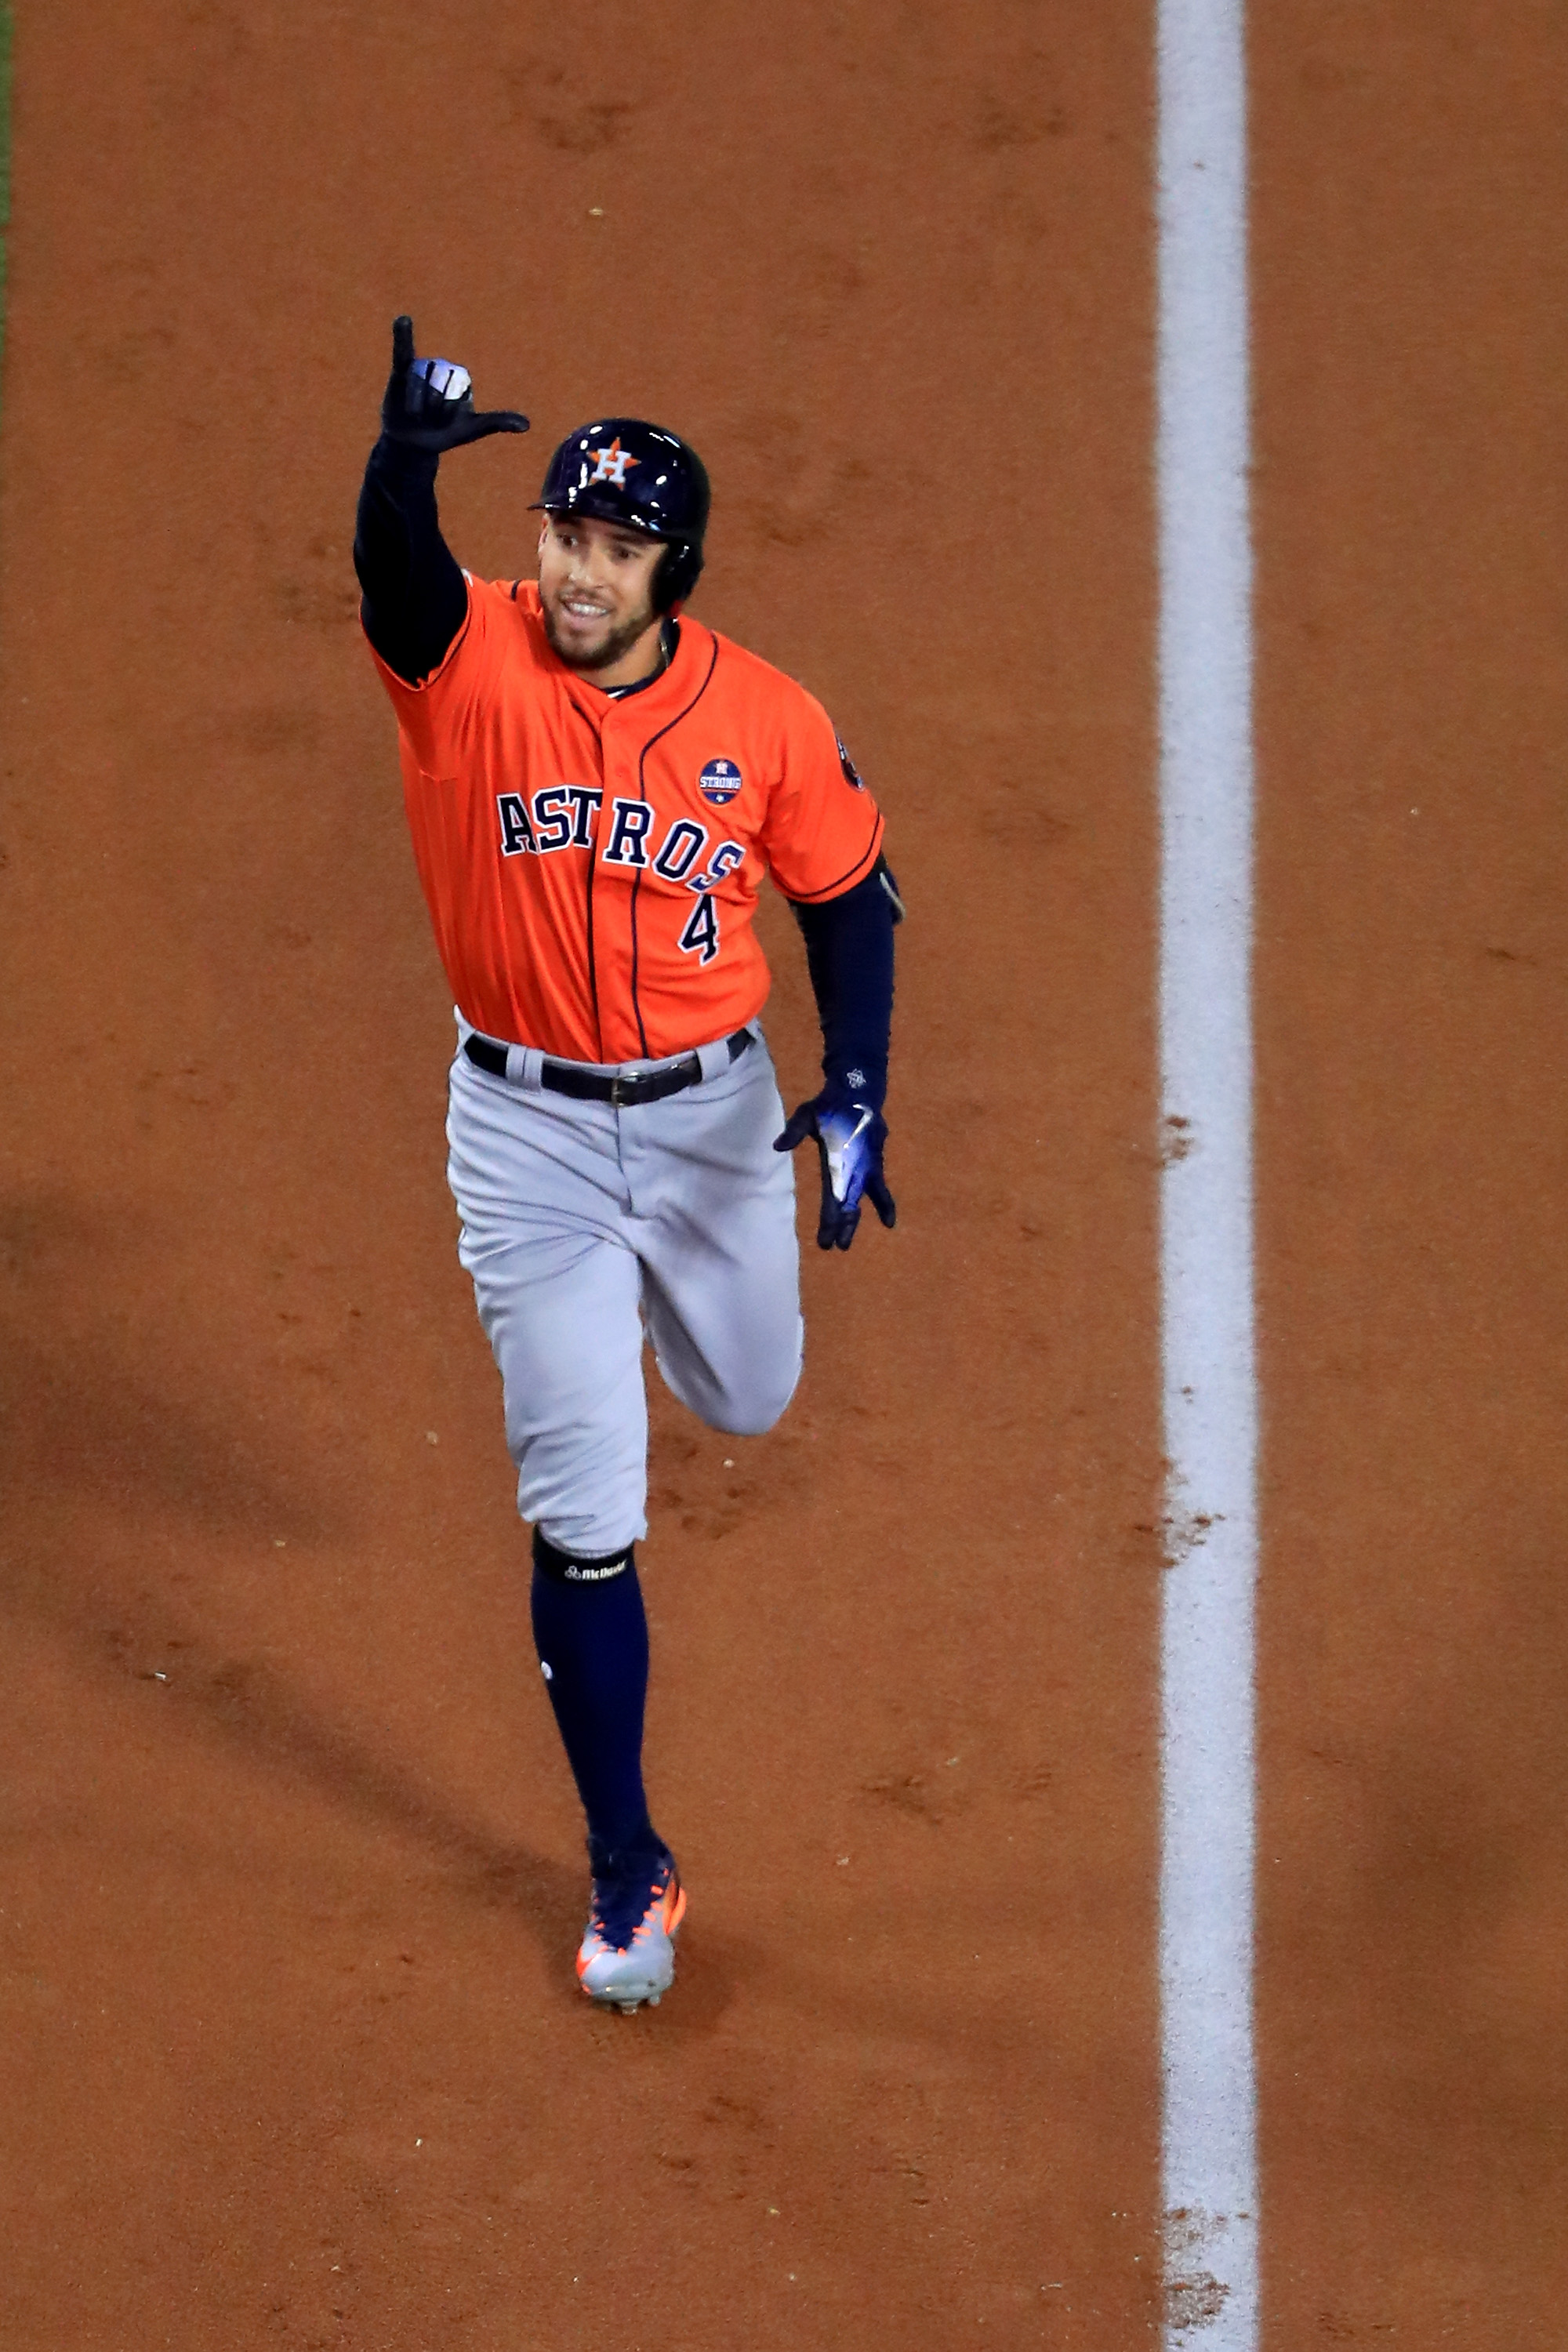 Astros win their first World Series with convincing 5-1 win over Dodgers in Game 7